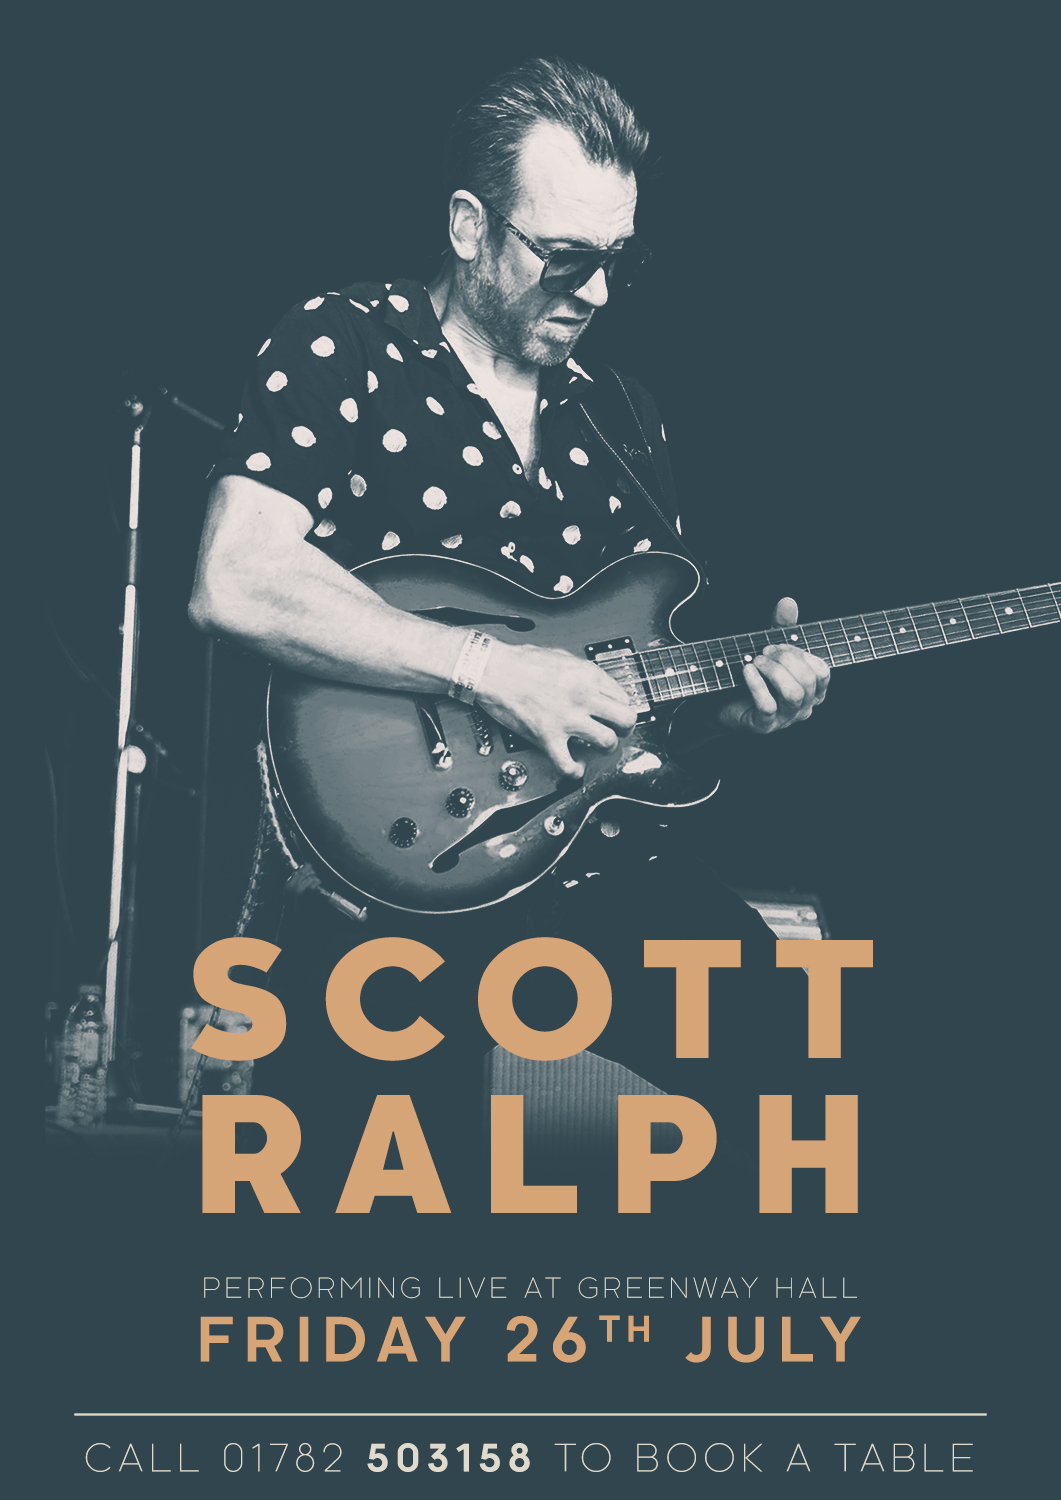 Come and see Scott Ralph perform live at Greenway Hall to book at table call 01782-503158 option 2